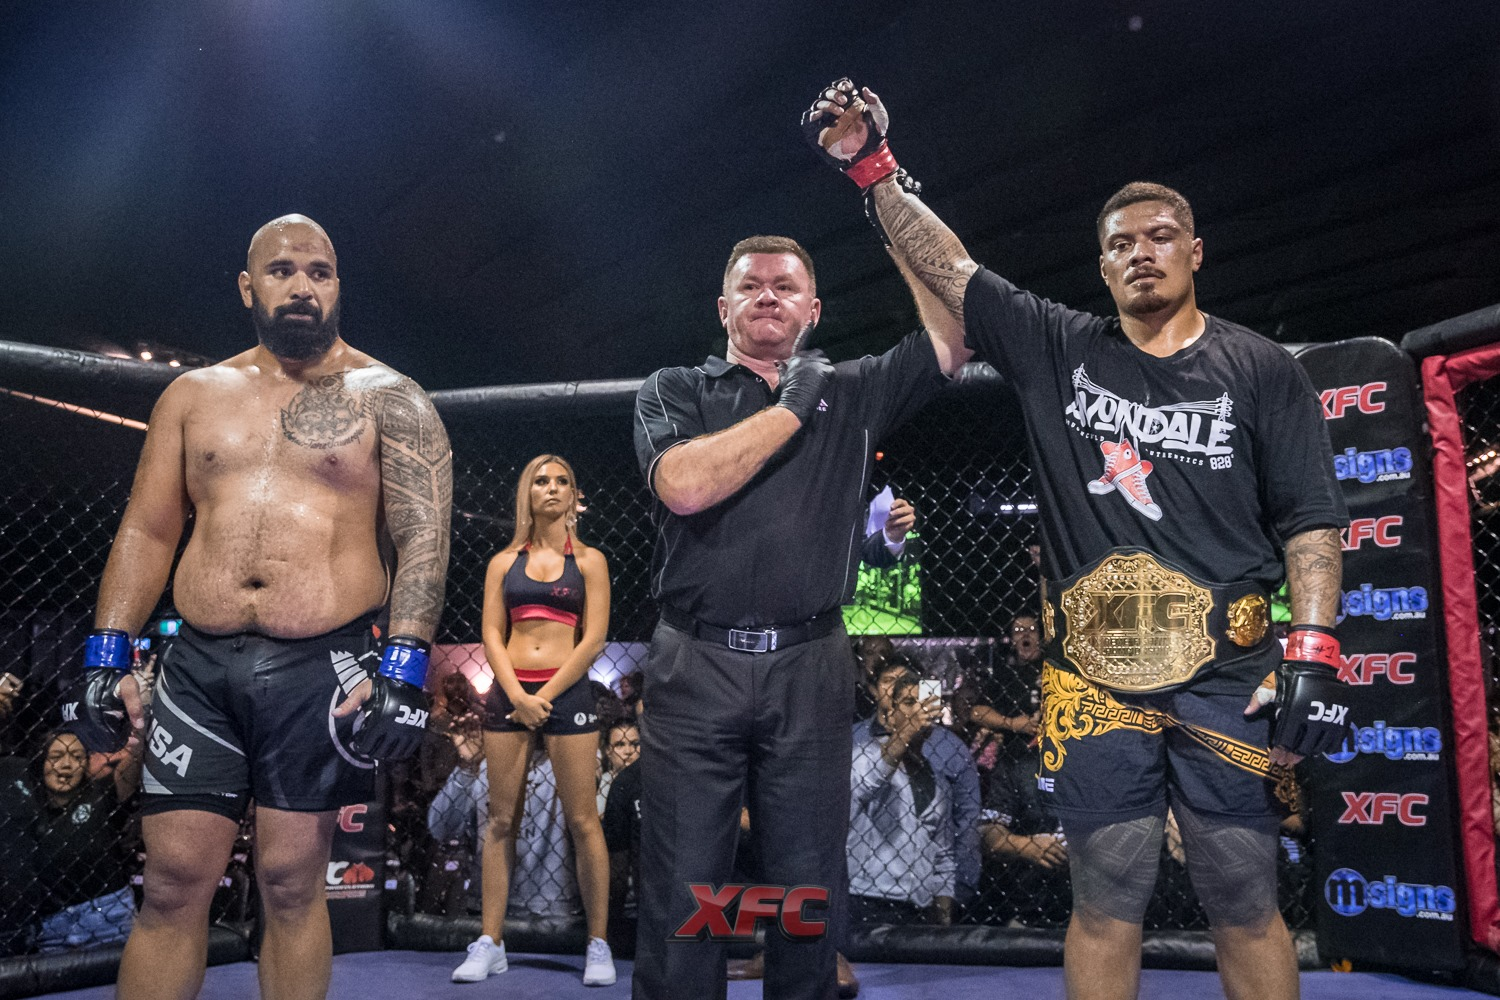 Justin Tafa - Justin Tafa is an Australian Heavyweight Mixed Martial Artist. The current XFC Heavyweight Champion, Justin has his sight set on the next level of MMA.🔗Facebook | Instagram